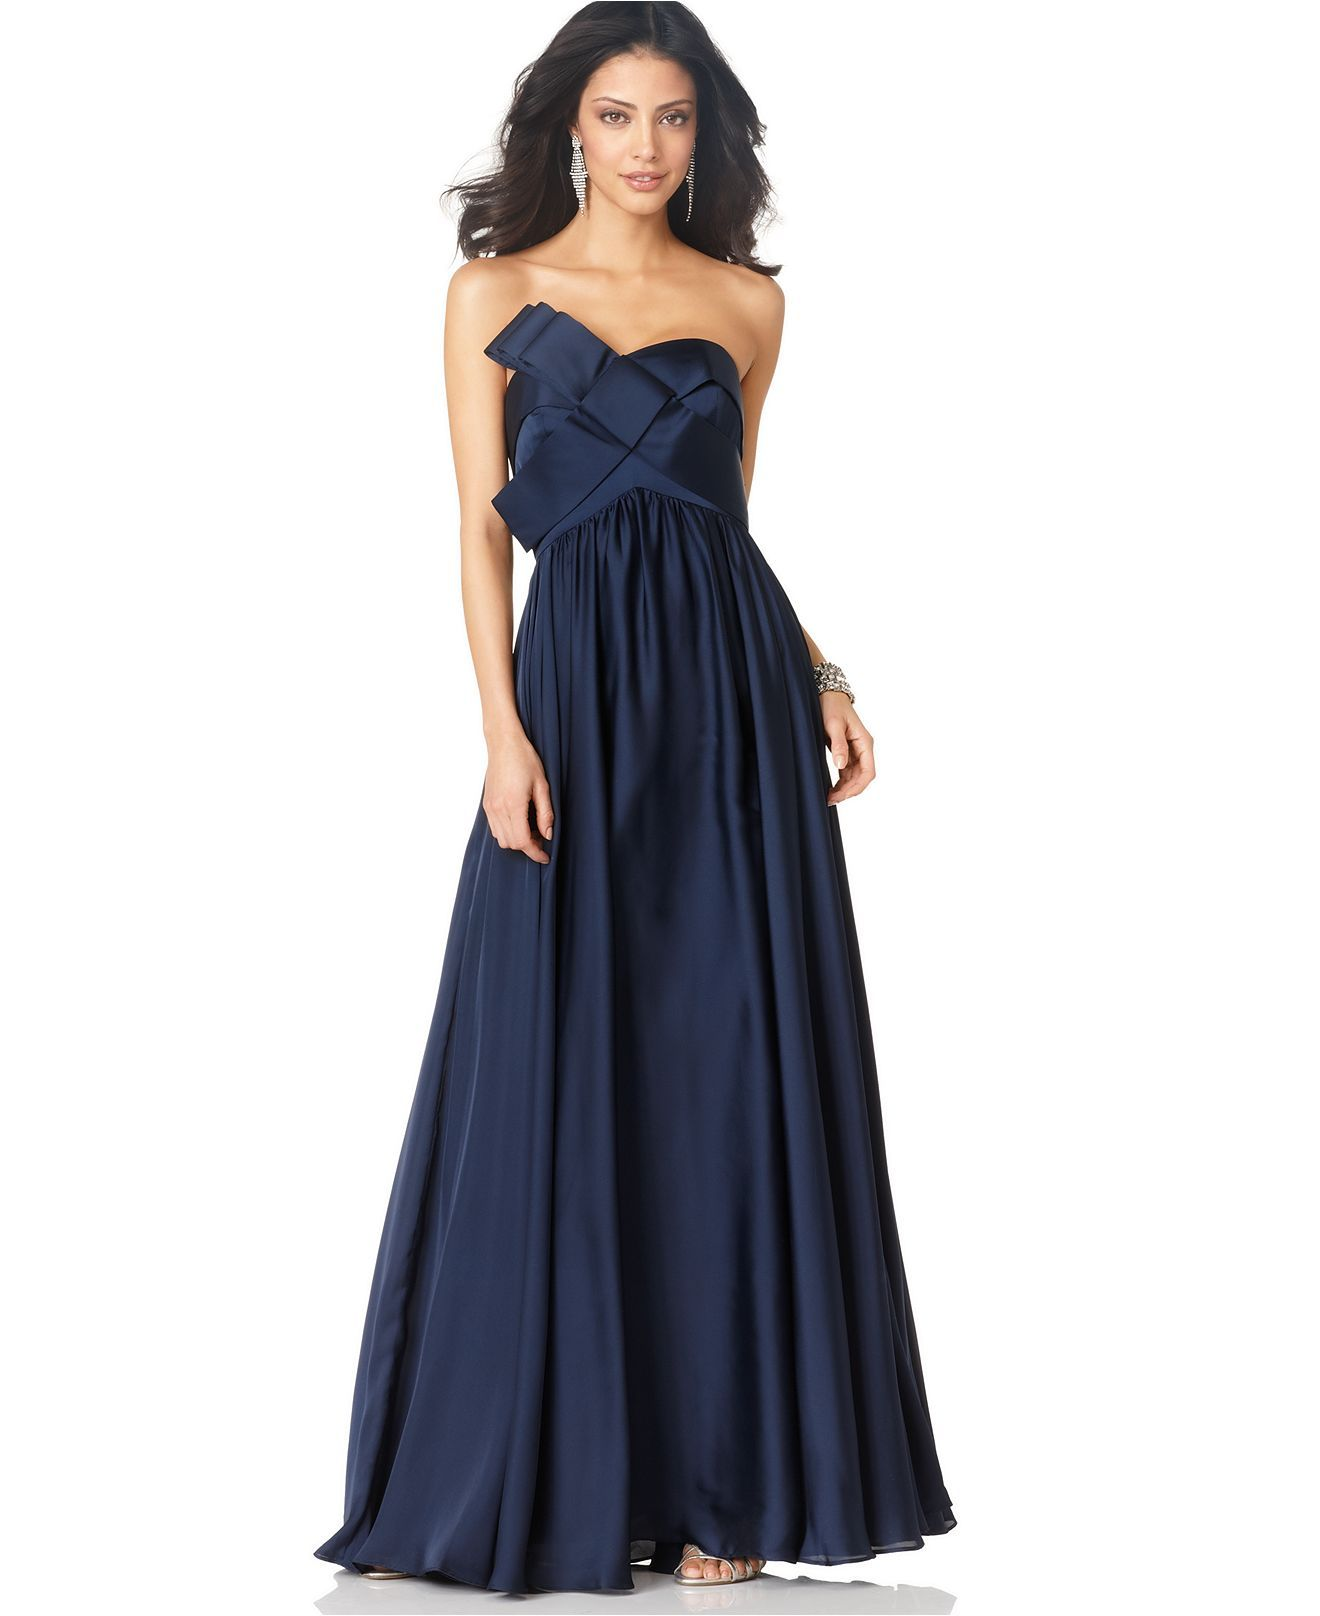 Js collections dress strapless long evening dress womens js collections dress strapless long evening dress womens bridesmaid dresses macys ombrellifo Gallery